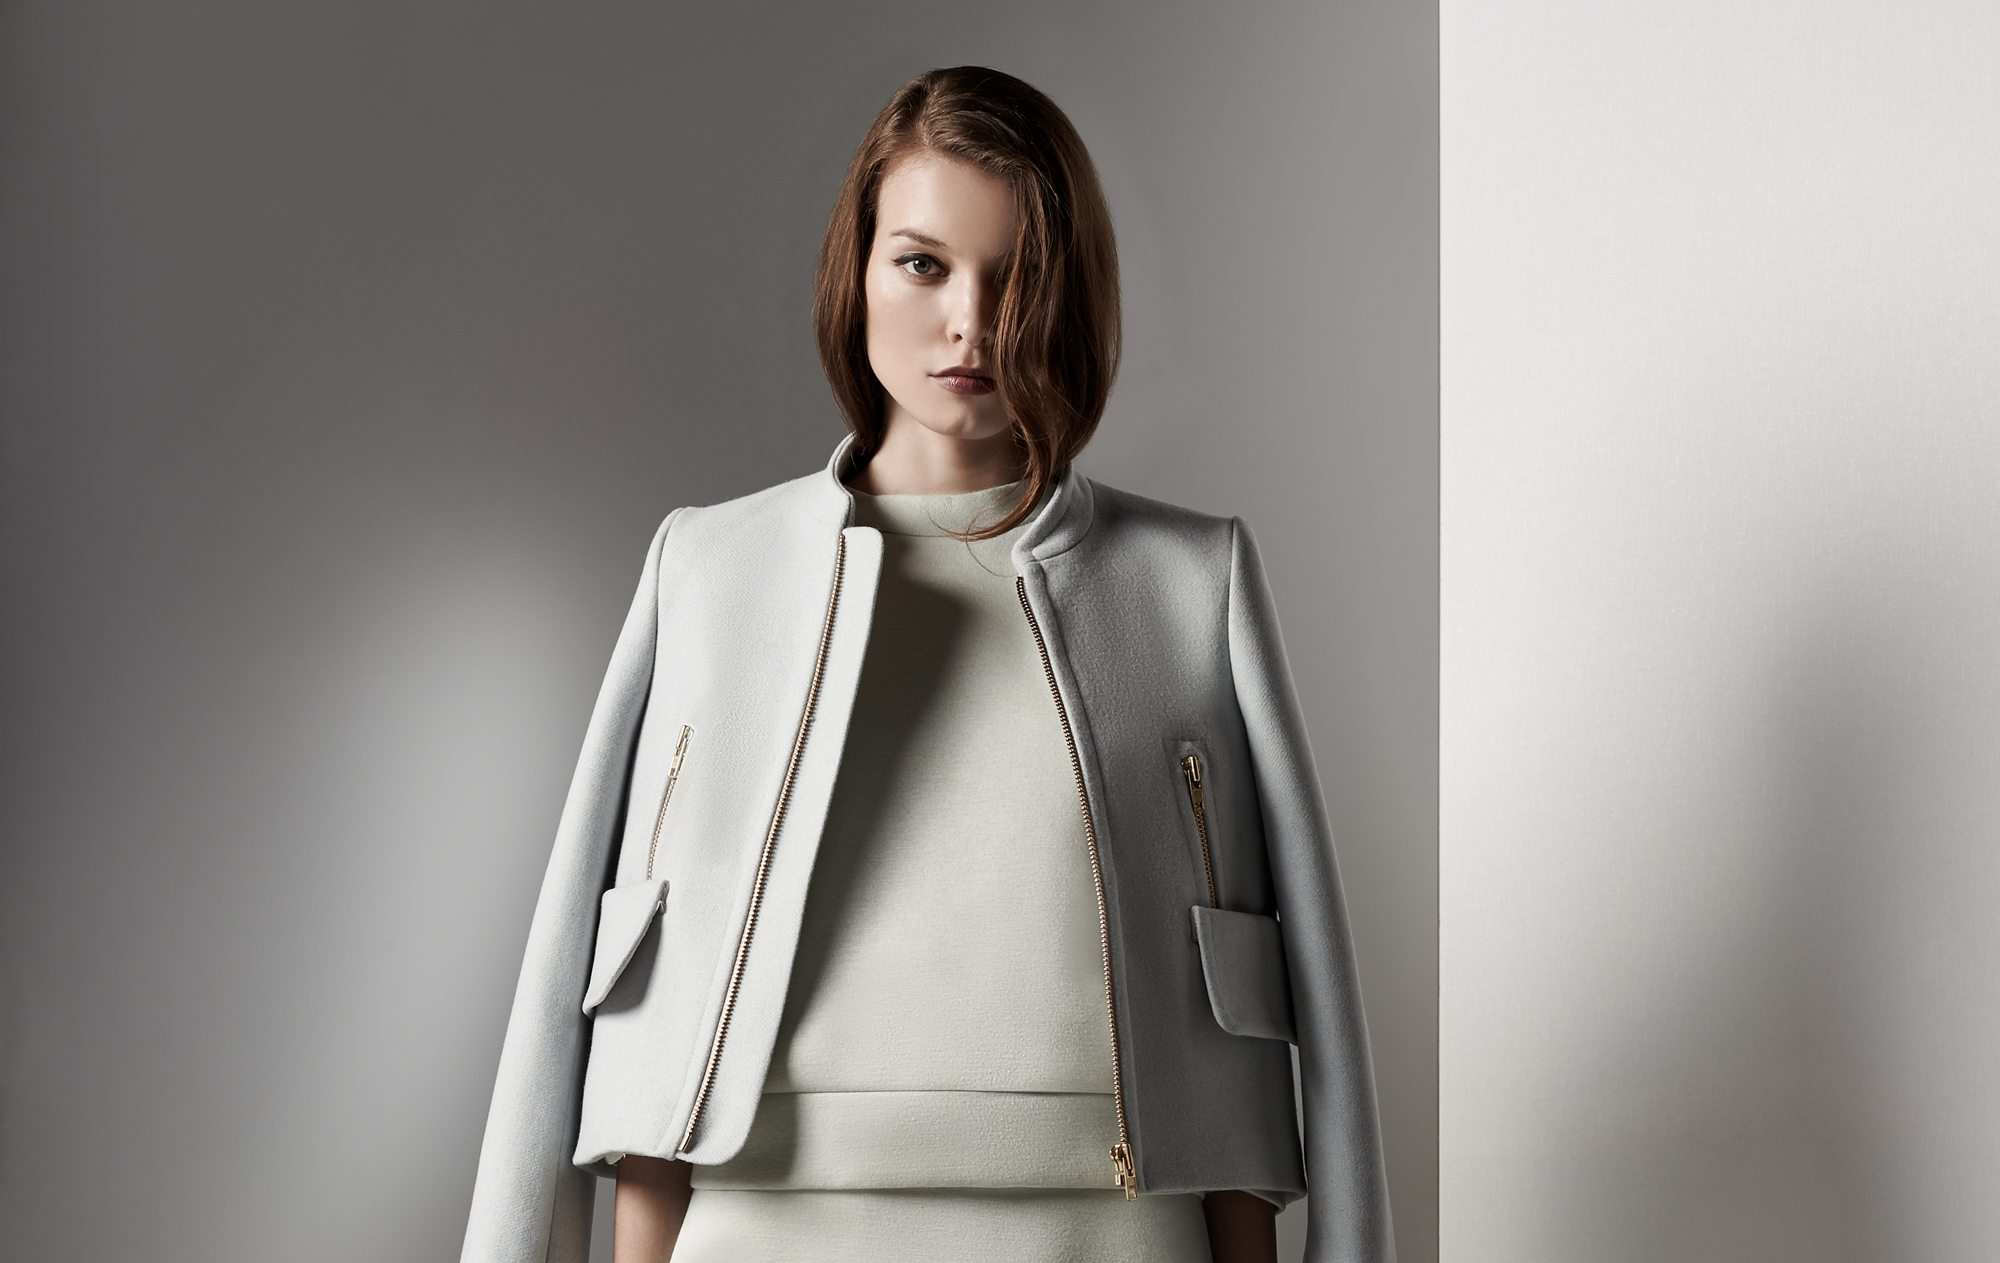 REISS FALL 2014 RTW COLLECTION